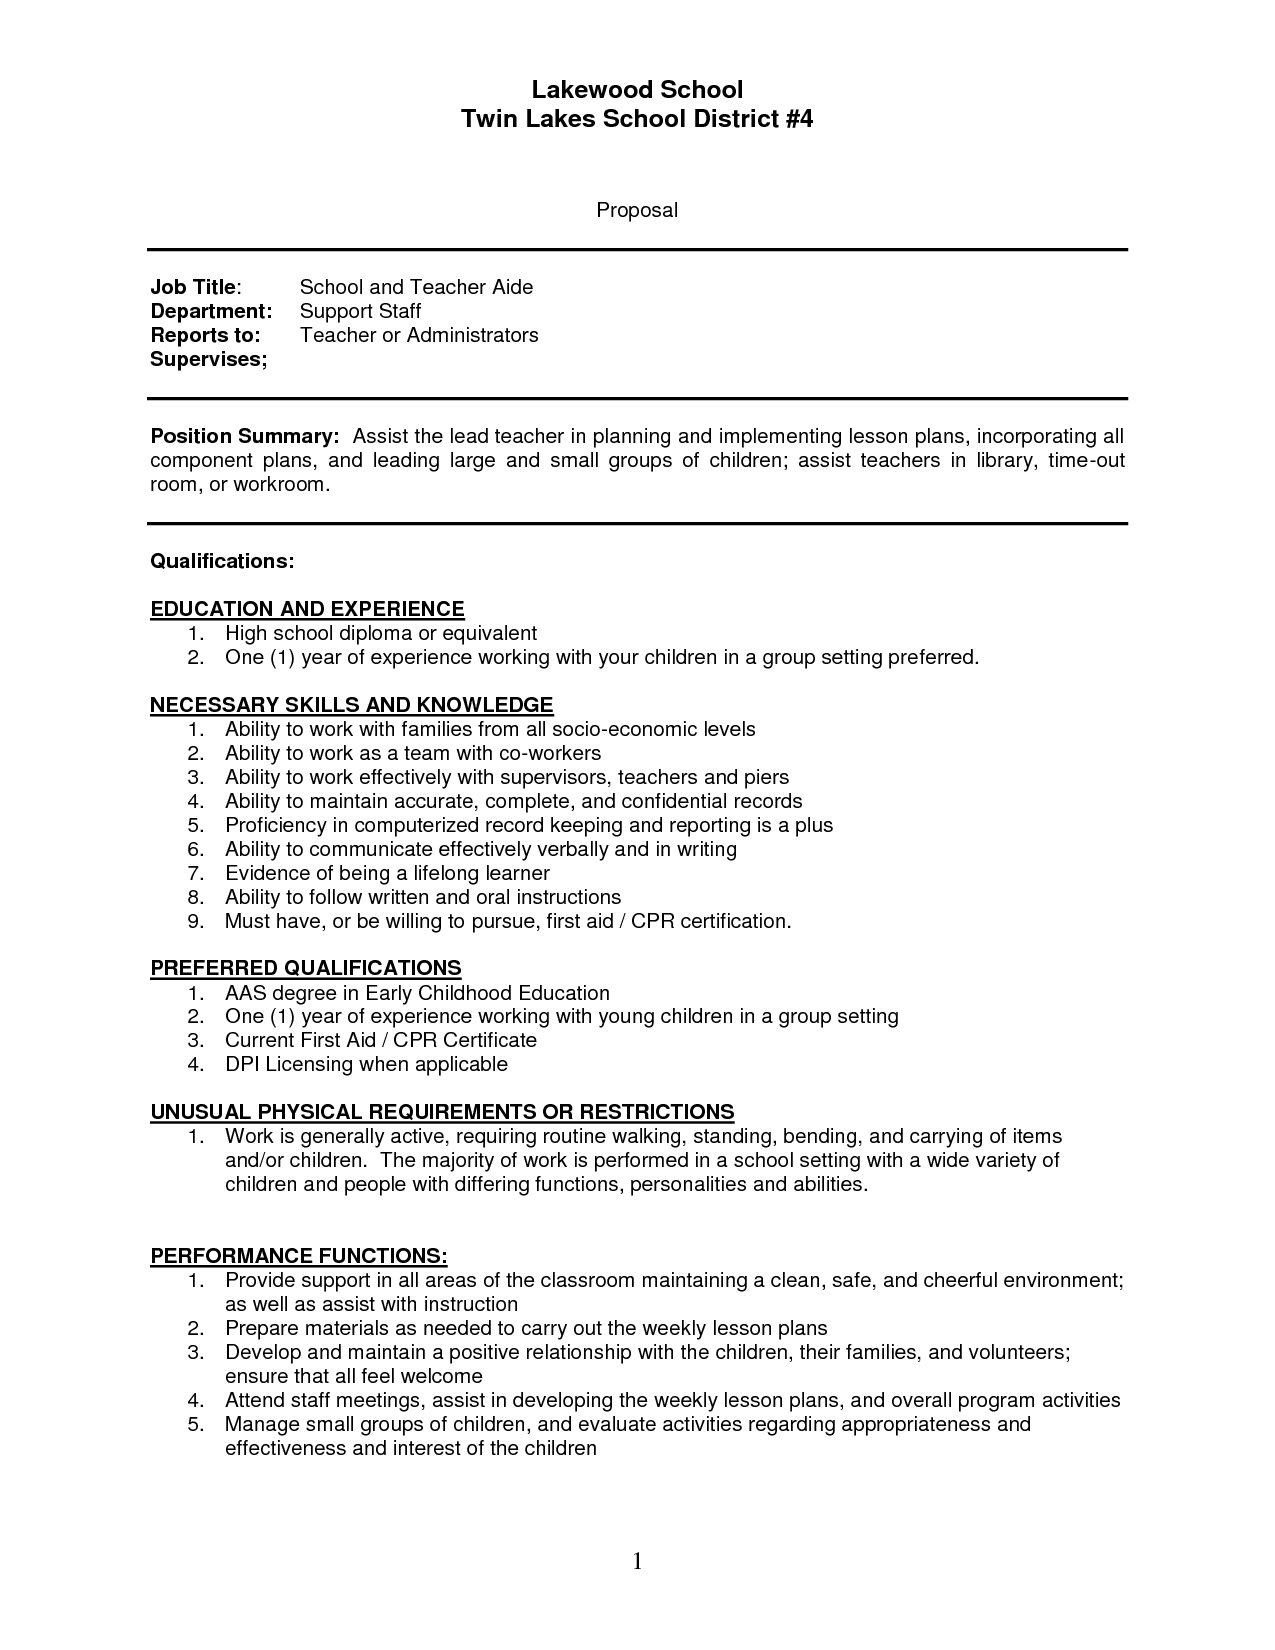 Teacher Assistant Sample Resume Sample Resume Of Teachers Aides Resume For Teacher Teacher Resume Examples Cover Letter Teacher Teacher Resume Template